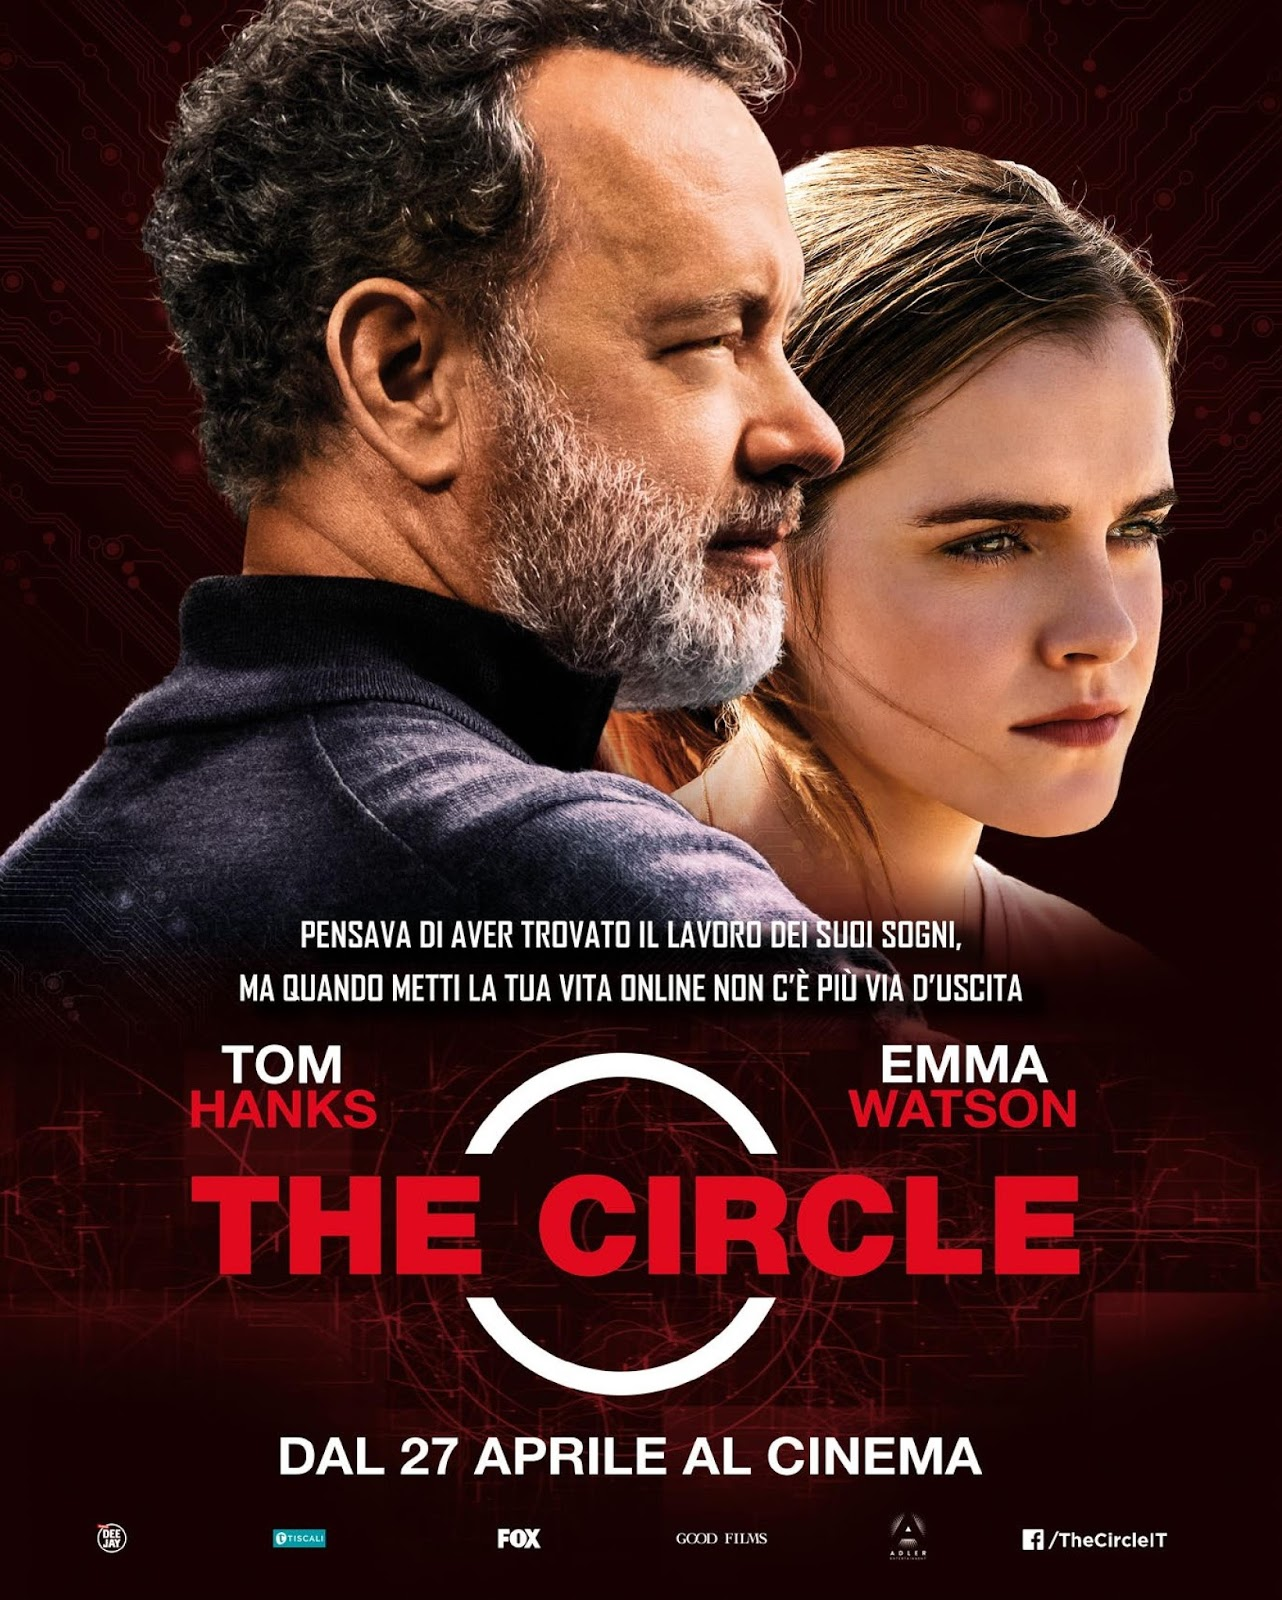 1 CIRCLE269 CIRCLEBest%2BMovie%2B%2BAprile%2B2017 page 001 - The Circle 2017 English 700MB HDTC x264